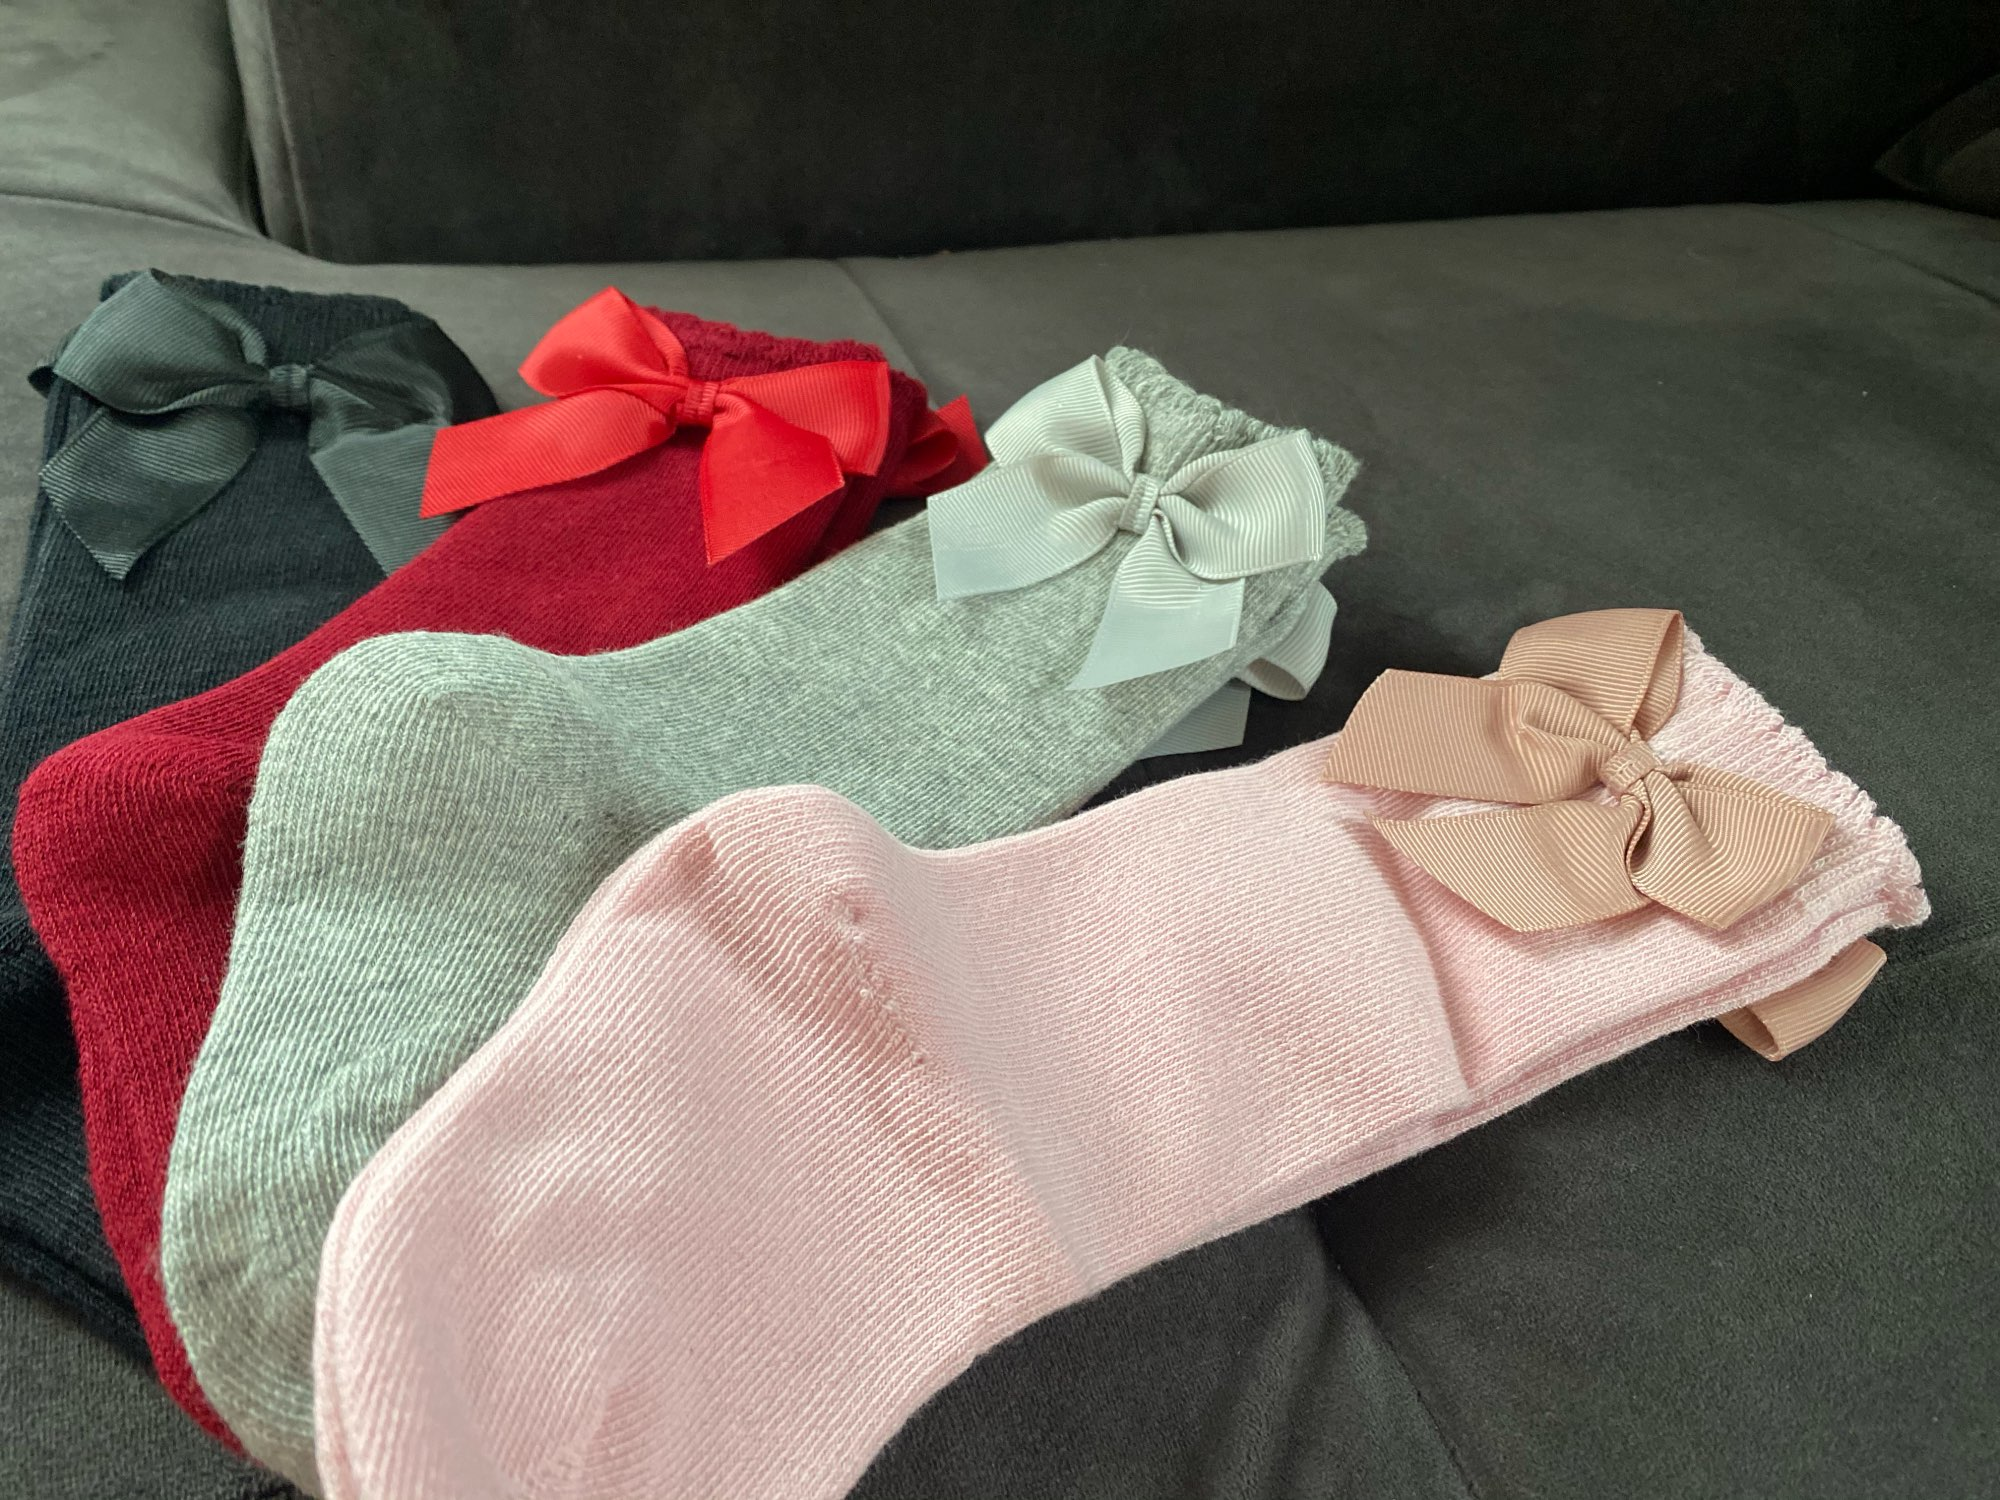 2020 Kids Socks Toddlers Girls Big Bow Knee High Quality Long Soft 100% Cotton Lace Baby Tube Sock Calcetines photo review